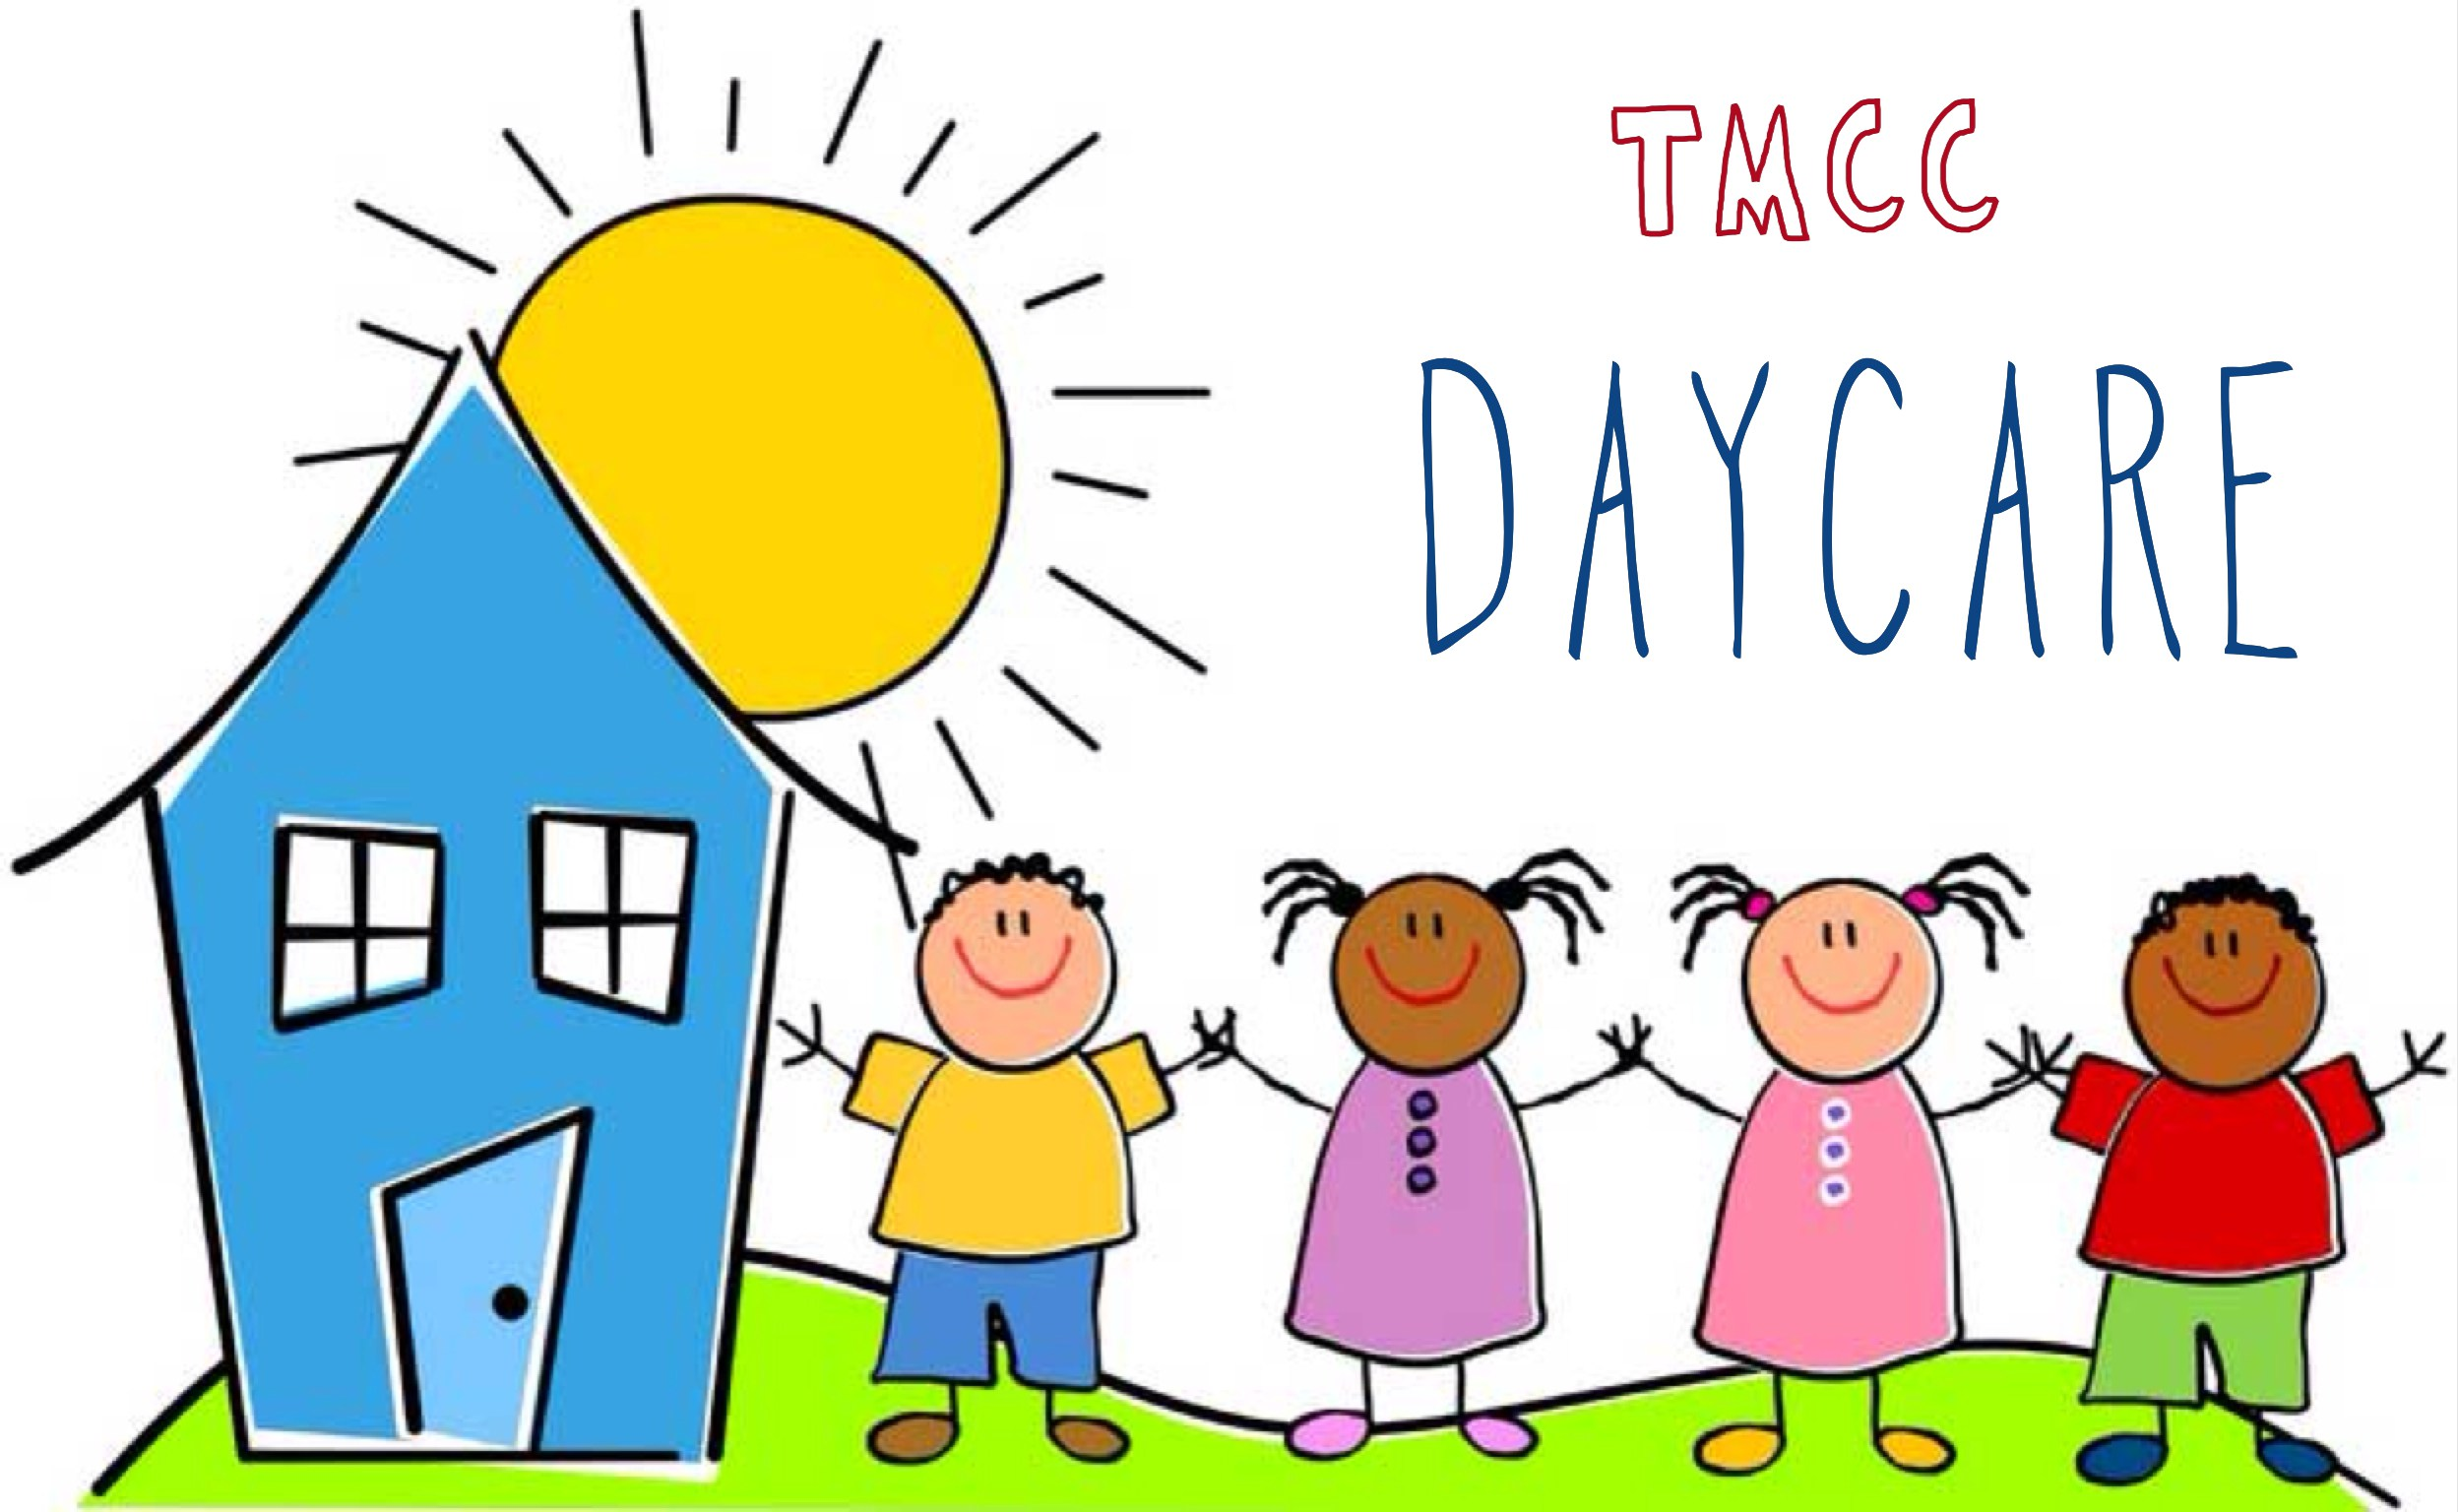 Day care clipart 2 » Clipart Station.